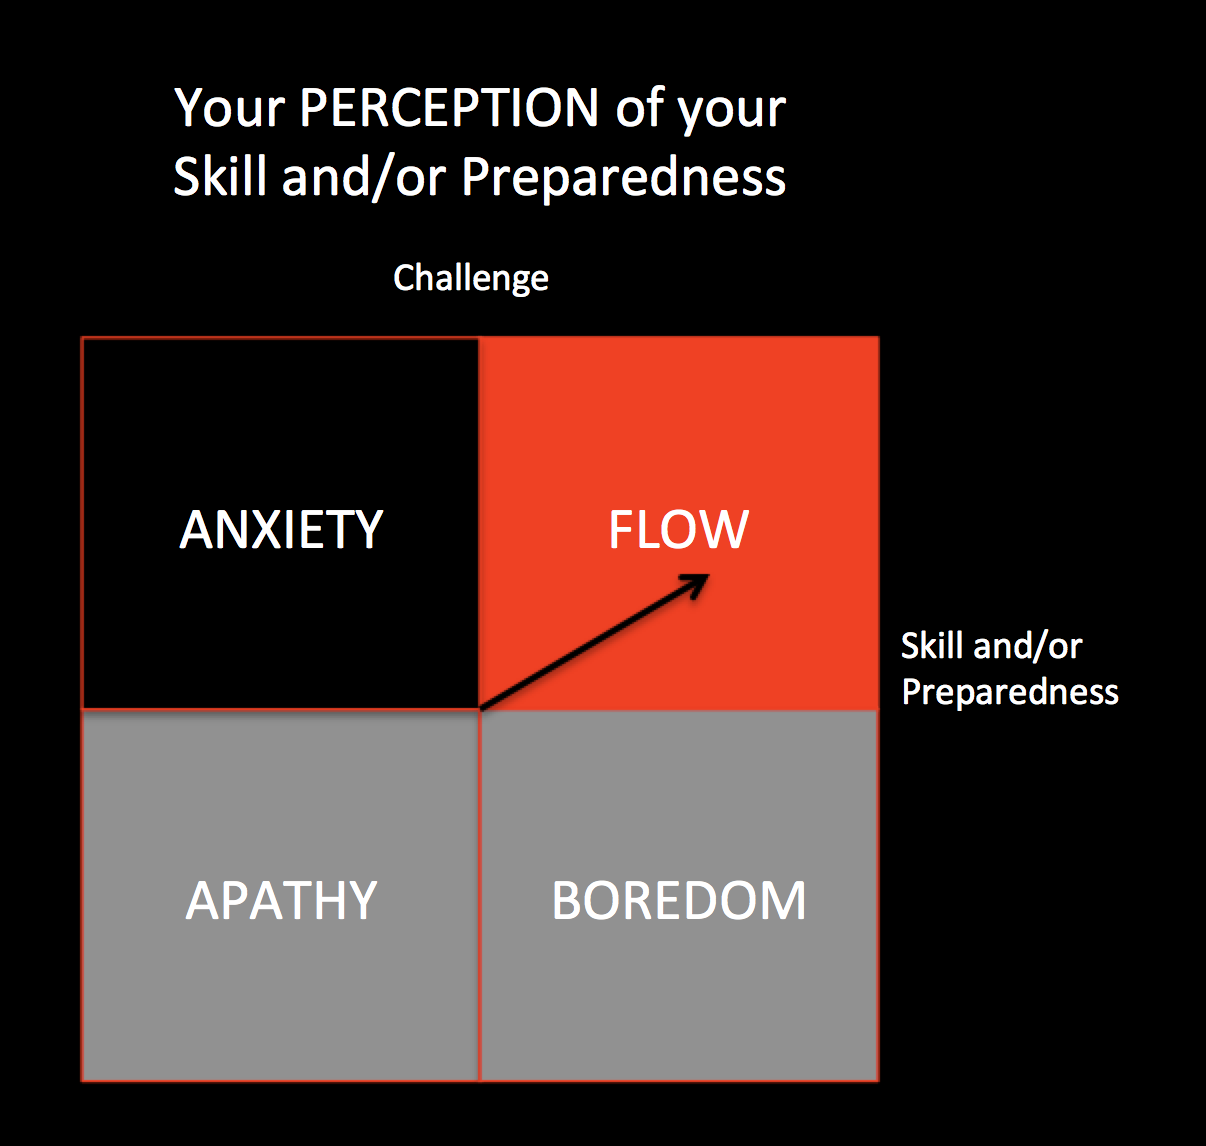 Figure 1: Adapted from Jackson & Csikszentmihalyi, 1999 p.37